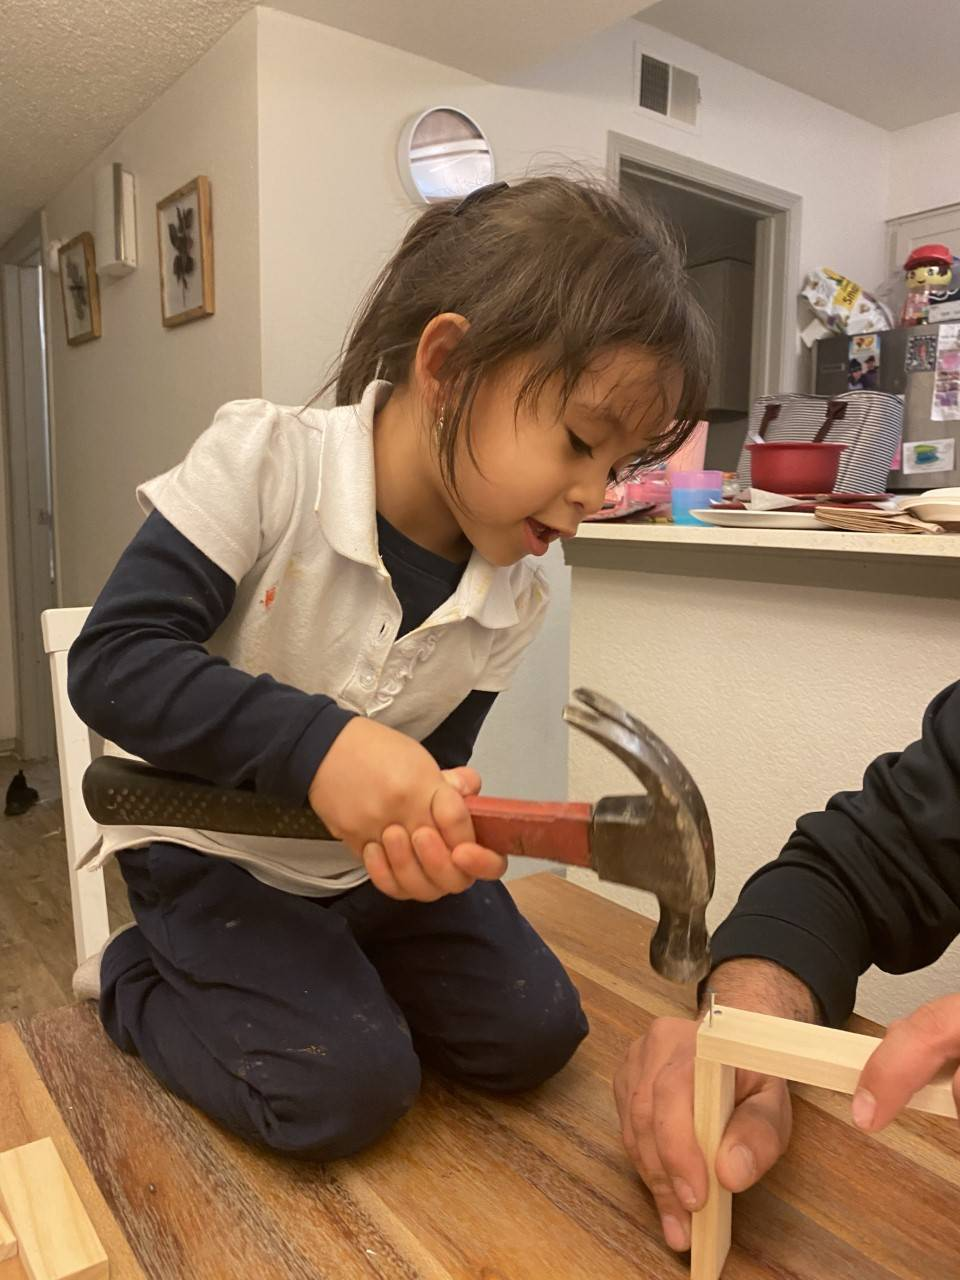 A little girl carefully hammers her picture frame from her Home Depot Kit.